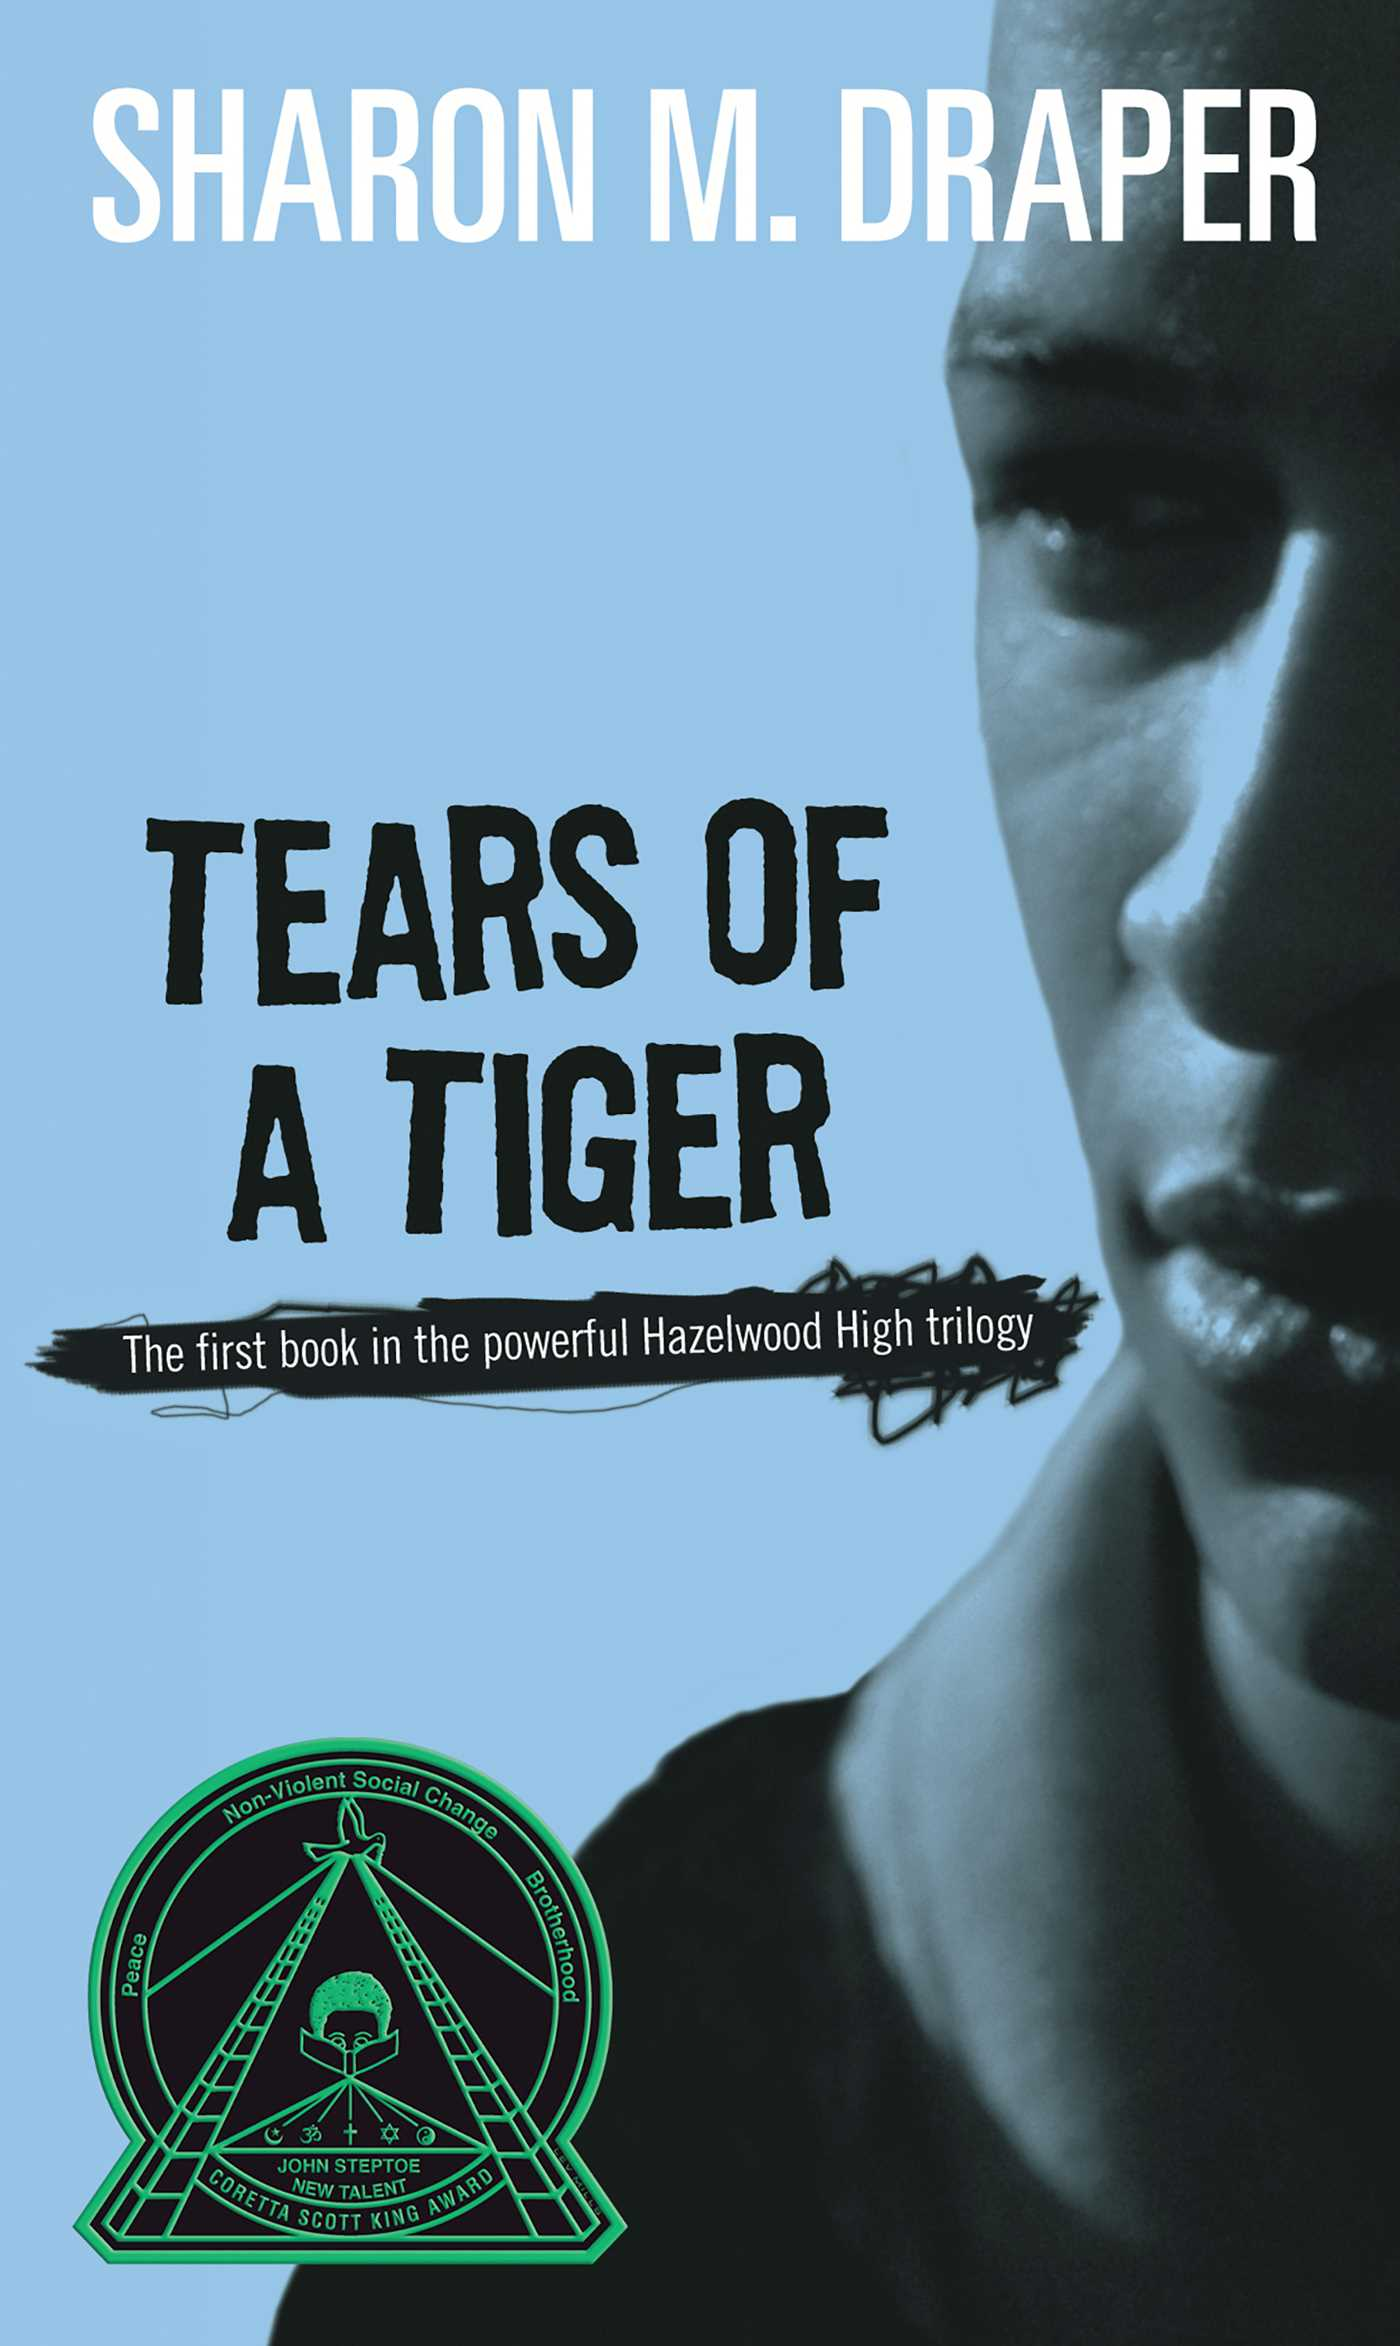 Tears-of-a-tiger-9781416928317_hr